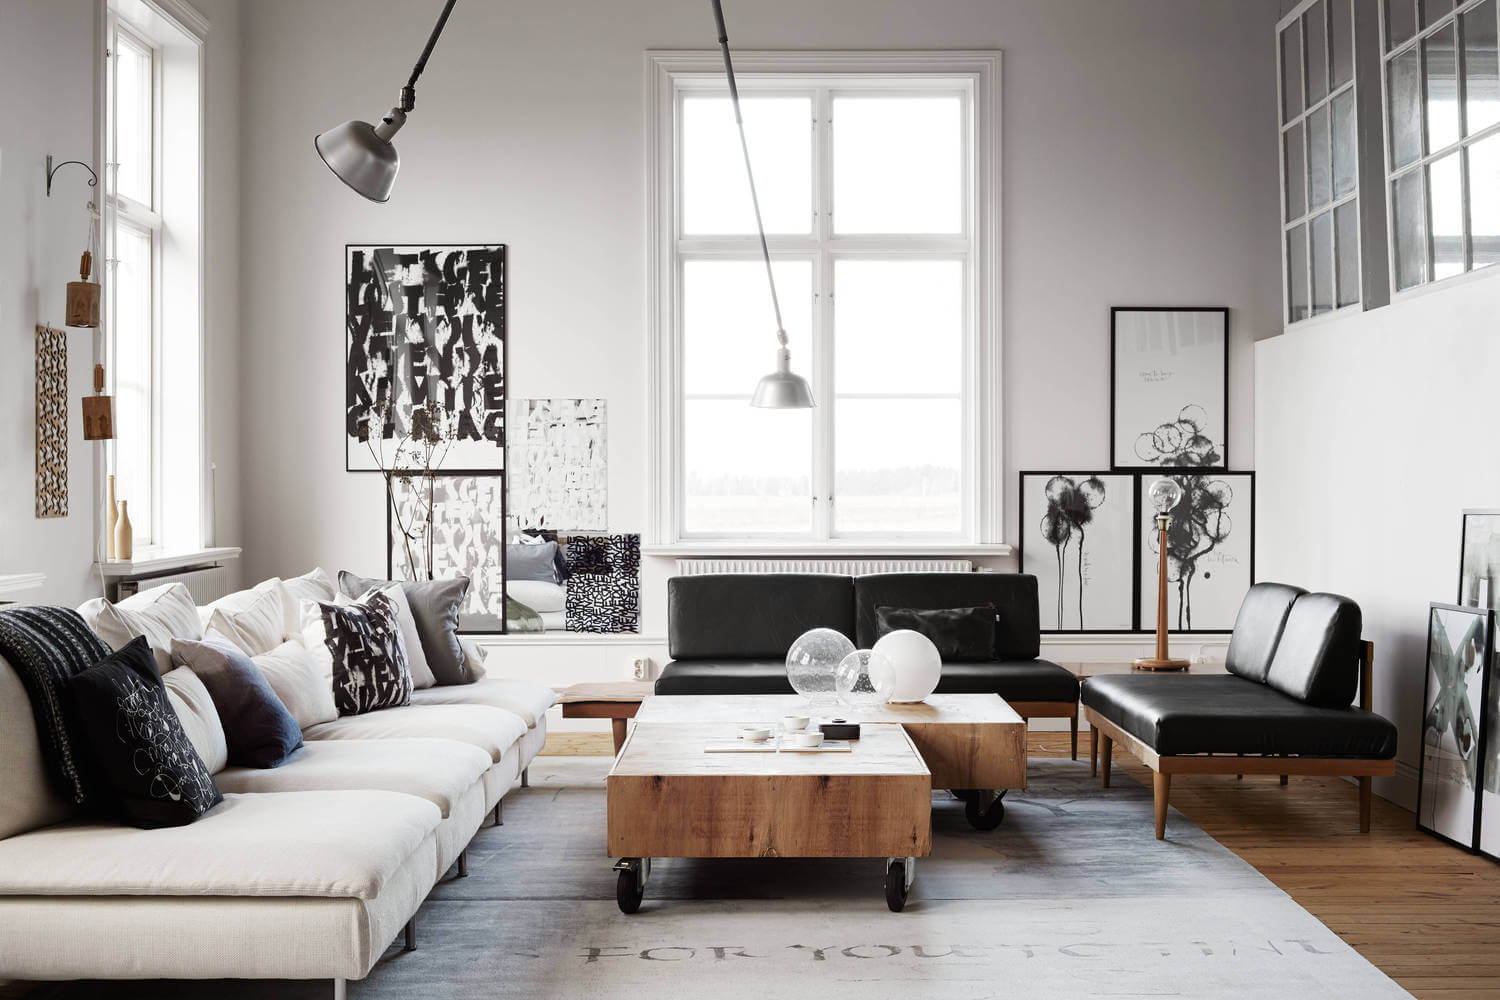 20 modern scandinavian furniture design trends 2016 for Designer living room furniture interior design